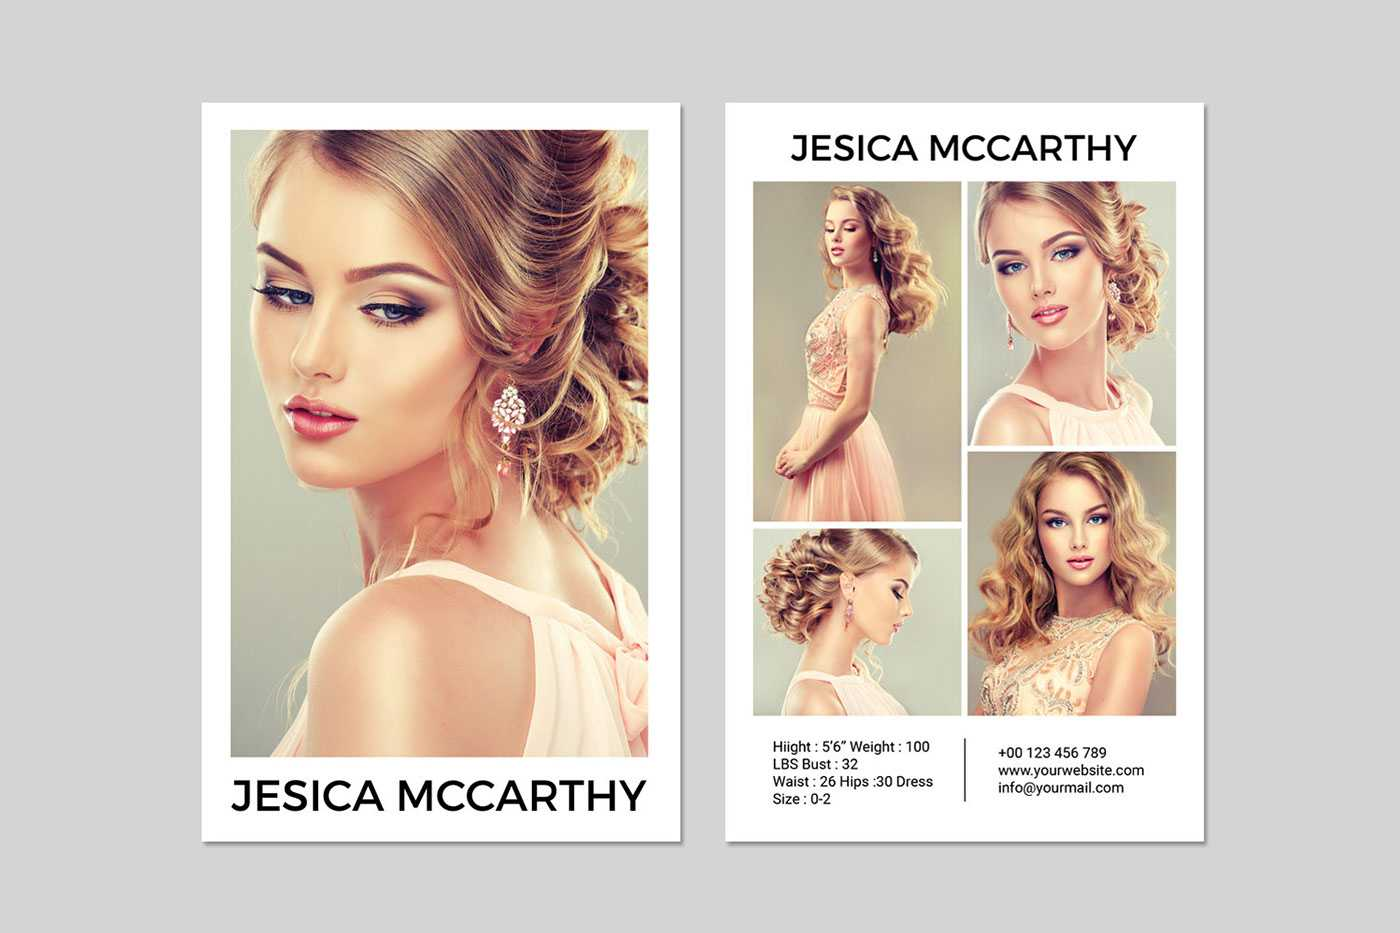 031 Model Comp Card Template Outstanding Ideas Psd Free For Download Comp Card Template